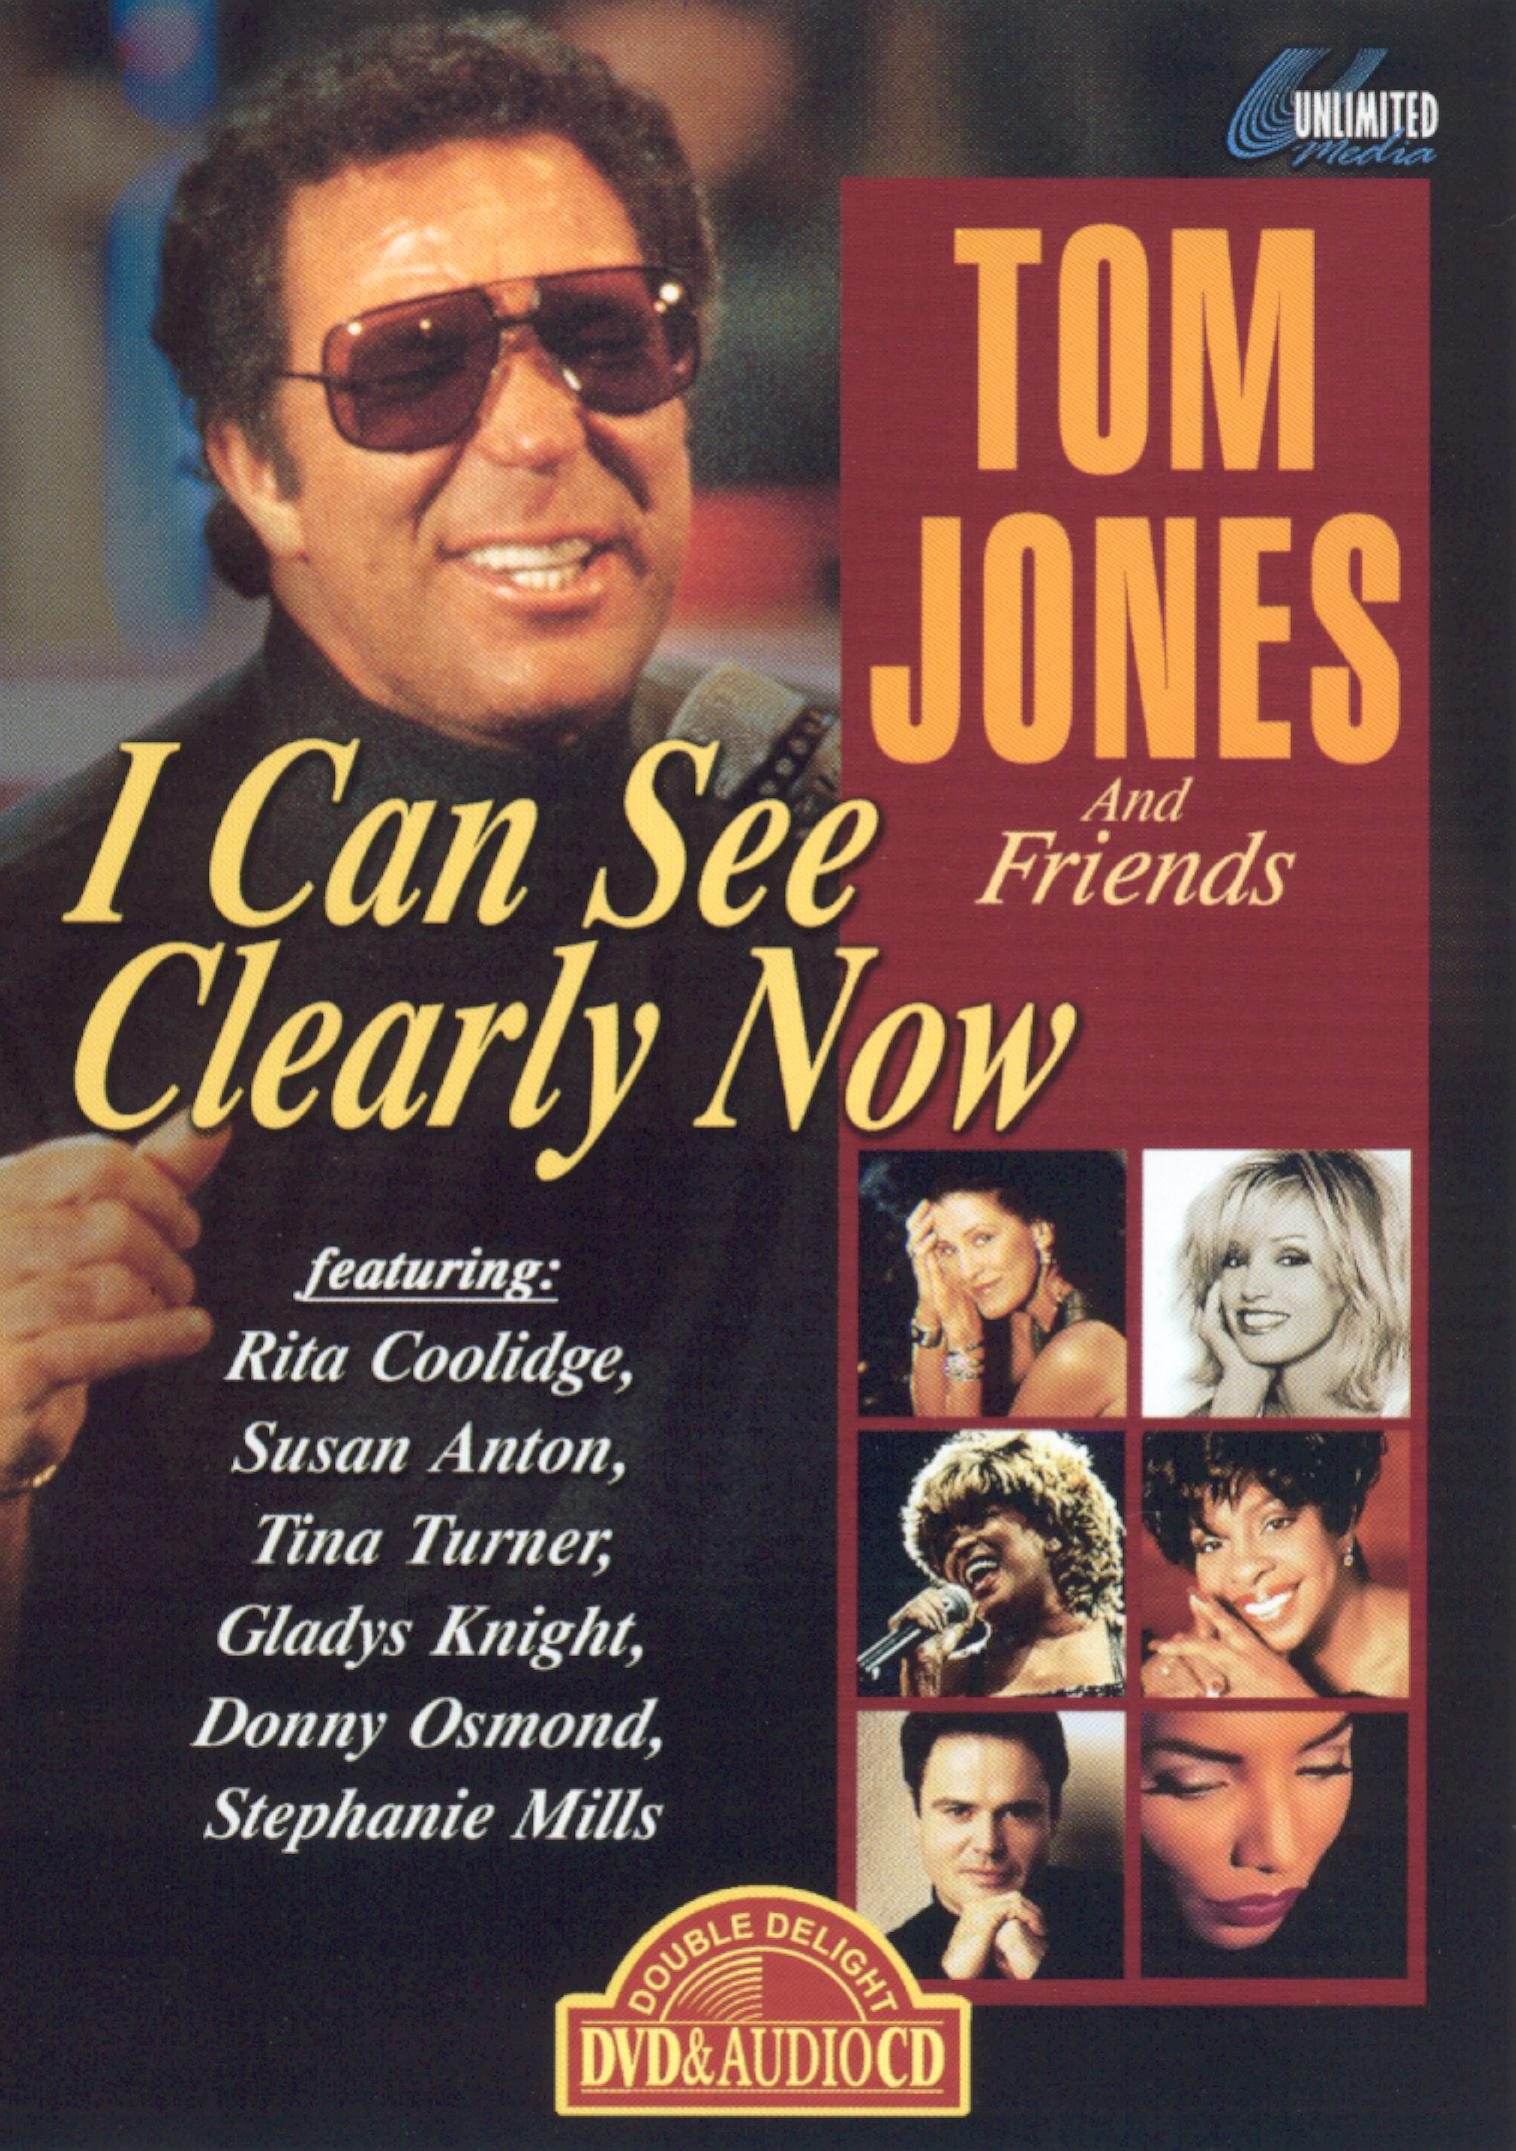 Tom Jones, Vol. 2: I Can See Clearly Now